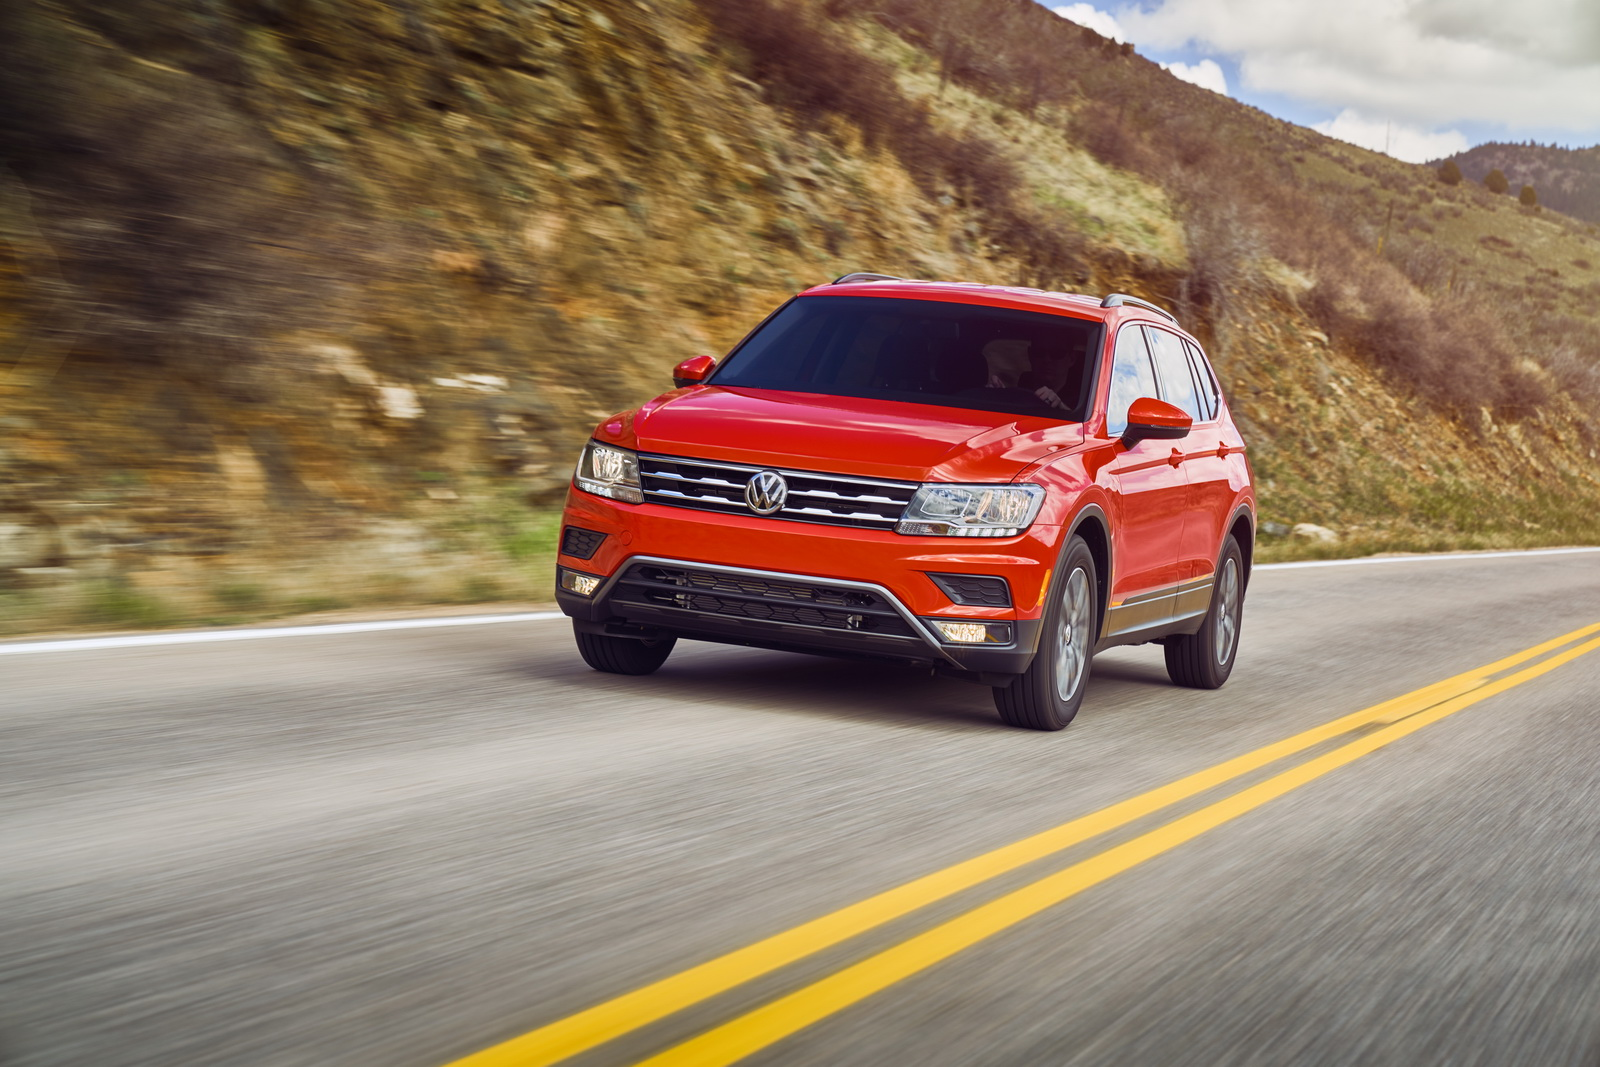 vw prices all new 2018 tiguan from 25 345 in the u s carscoops. Black Bedroom Furniture Sets. Home Design Ideas